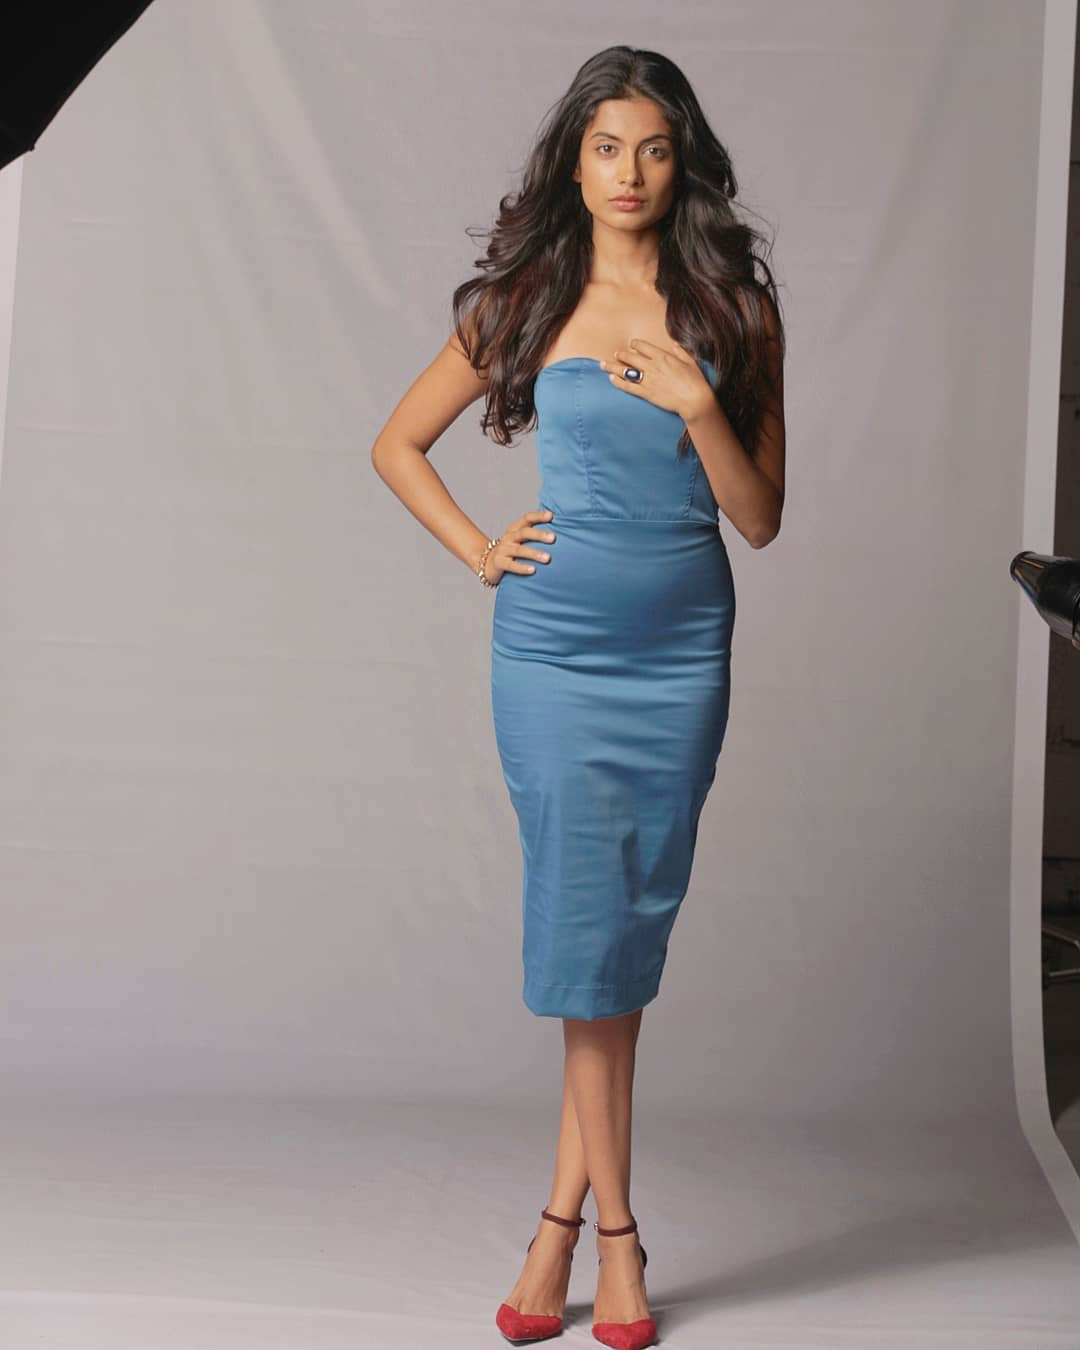 Sara Jane Dias Height - Actress Height